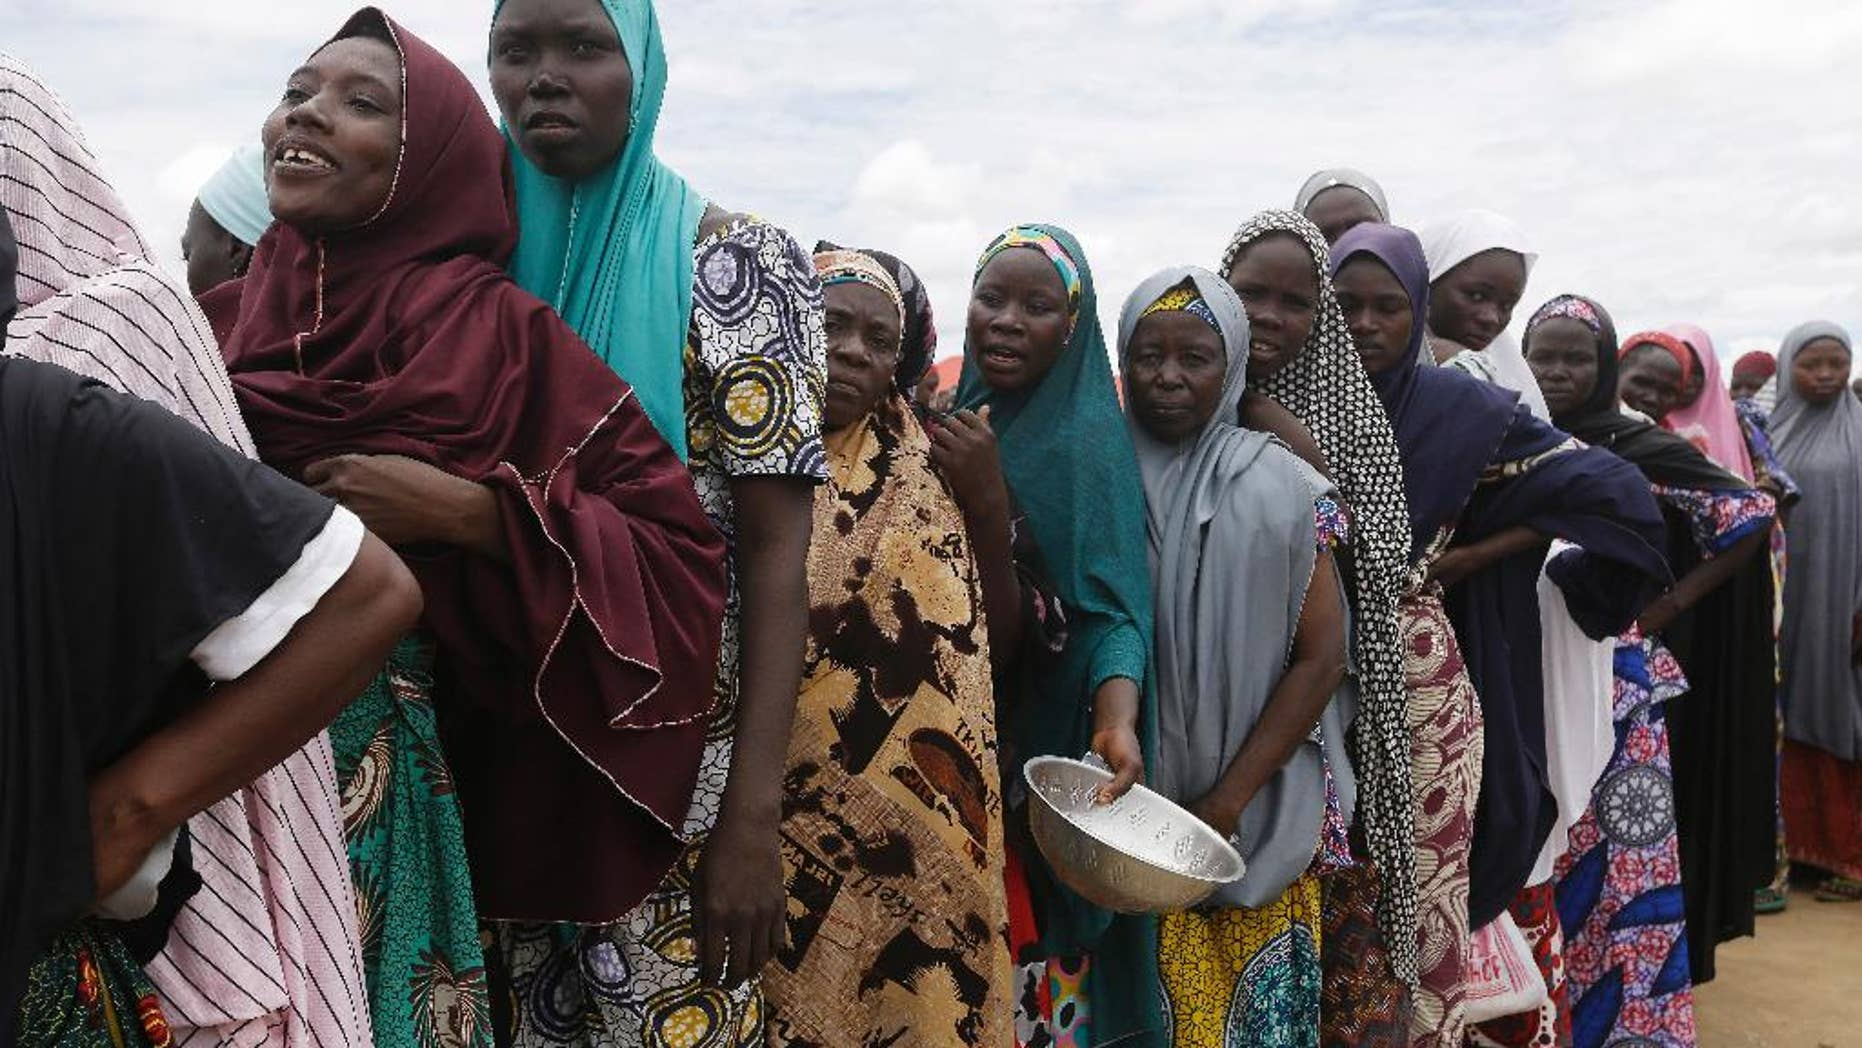 FILE-In this file photo taken Saturday, Aug. 27, 2016, women displaced by Islamist extremists wait for food to be handed out to them at the Bakassi camp in Maiduguri, Nigeria. Many say the dangerous journey is preferable to the hunger, humiliation and inhumane conditions in refugee camps where more than 1 million Nigerians, displaced by Boko Haram, are waiting to go home. Many are in Maiduguri, the biggest city in the northeast, the birthplace of Boko Haram, which has killed more than 20,000 and forced 2.6 million from their homes. (AP Photo/Sunday Alamba,File)